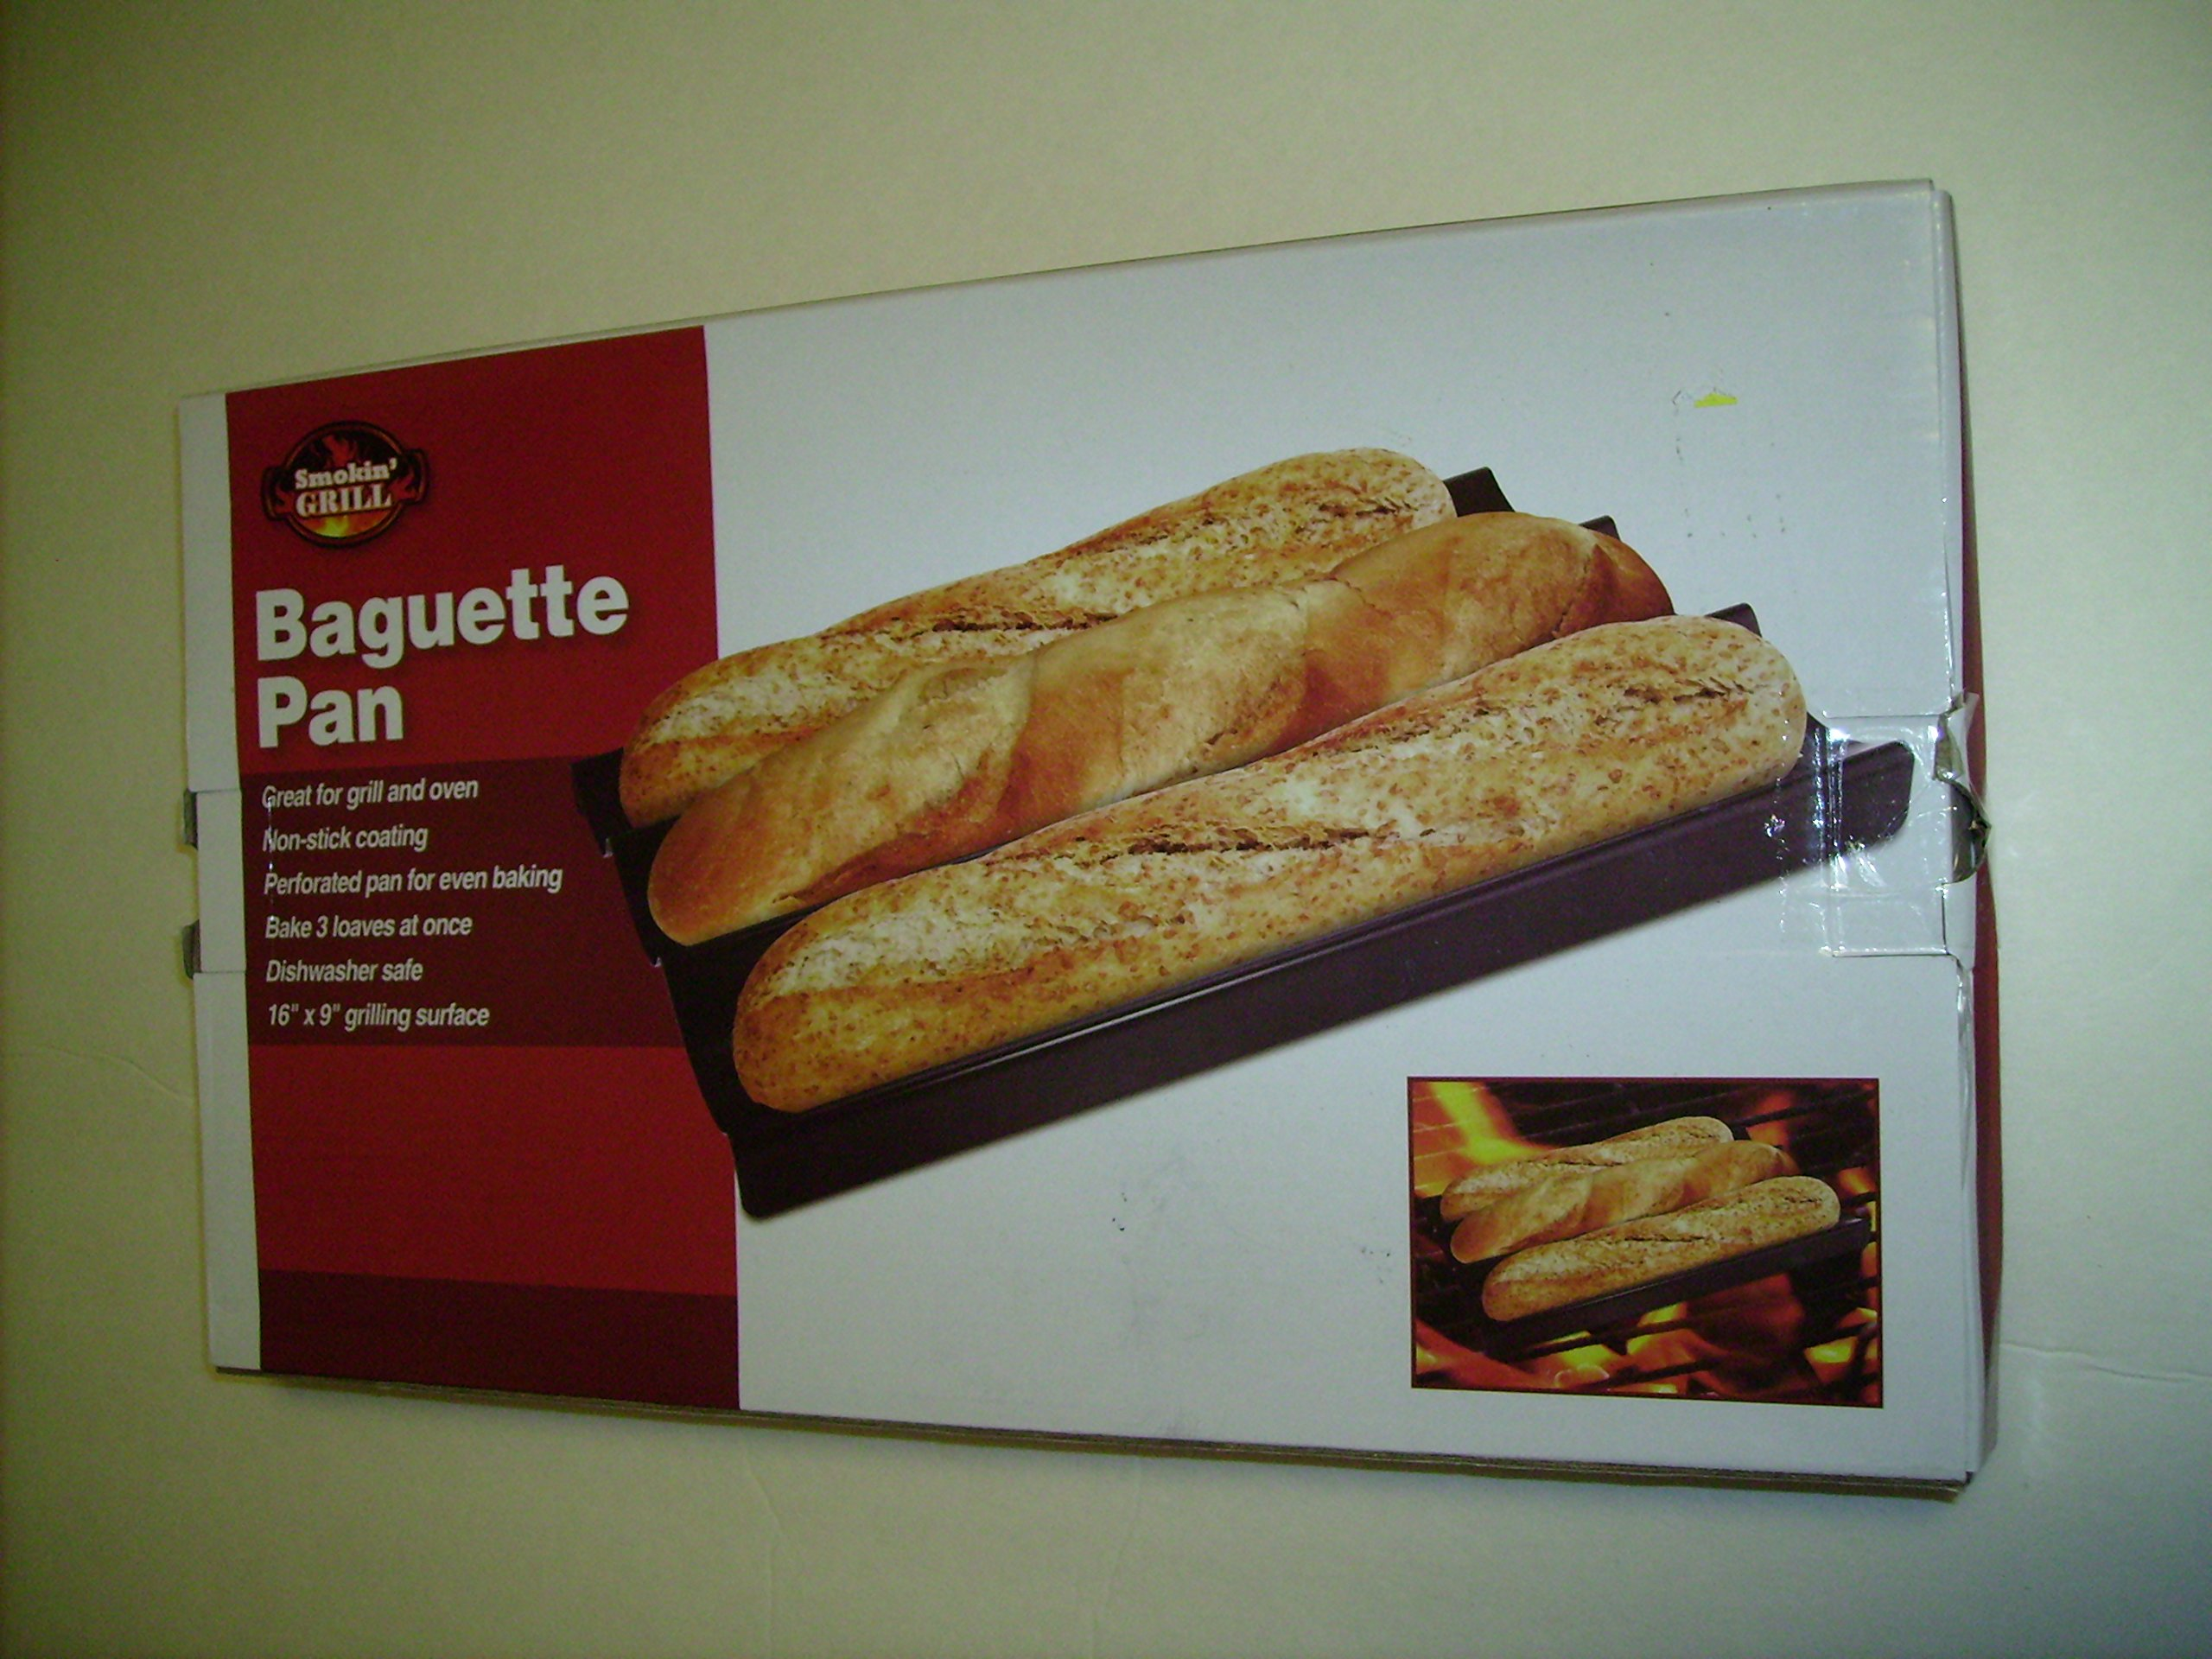 Smokin Grill 3-LOAF BAGUETTE PAN -NON-STICK For Every Day Usage